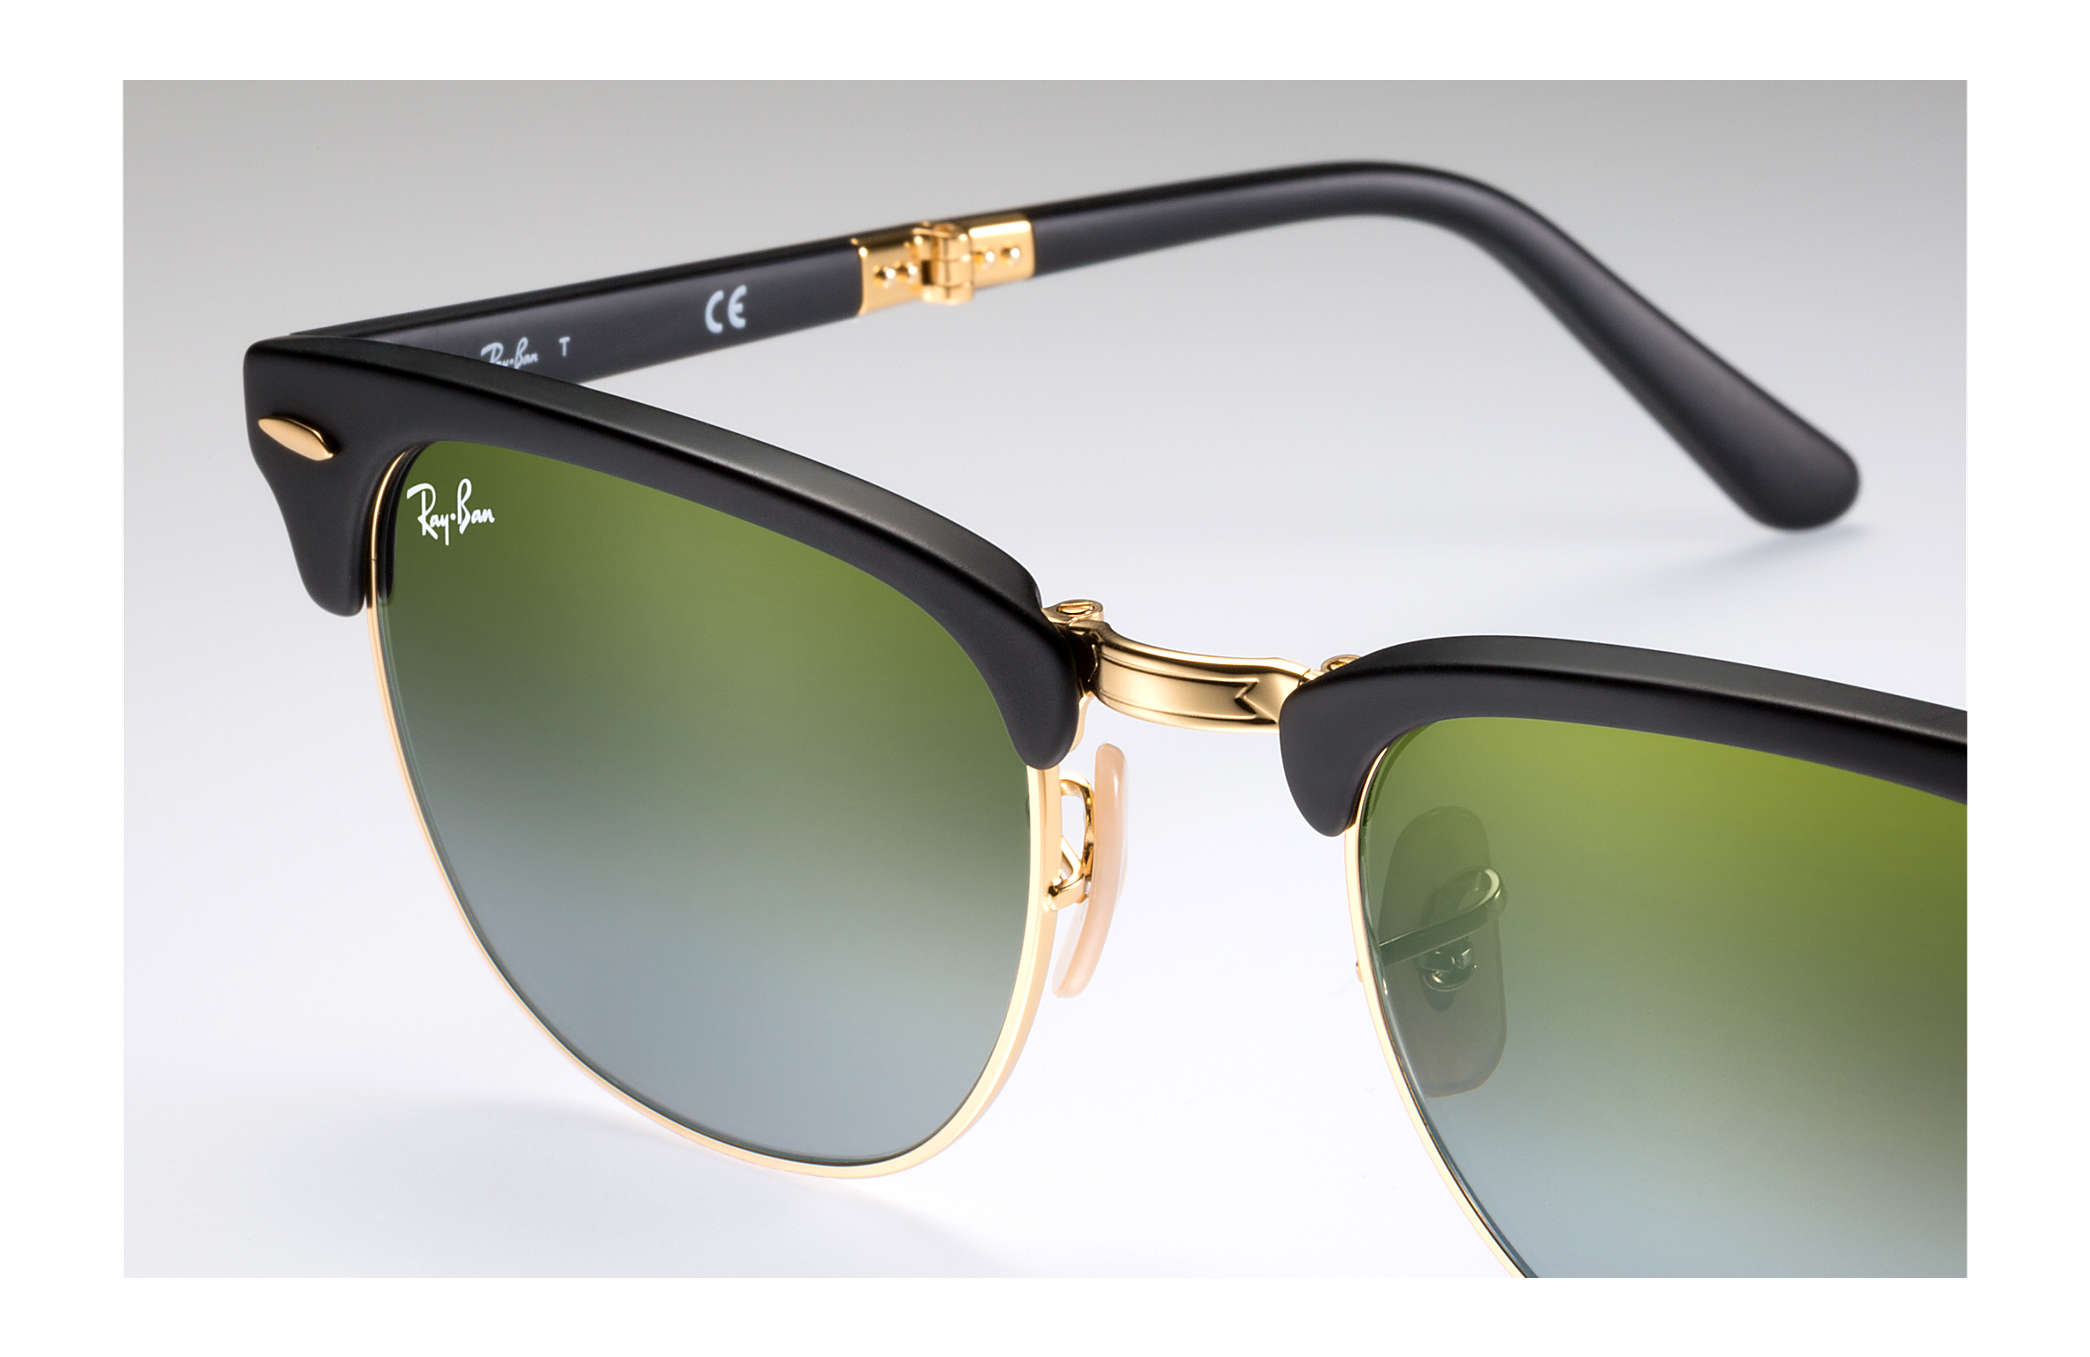 183a146af2a ... Ray-Ban 0RB2176-CLUBMASTER FOLDING FLASH LENSES GRADIENT Black  Gold  SUN ...